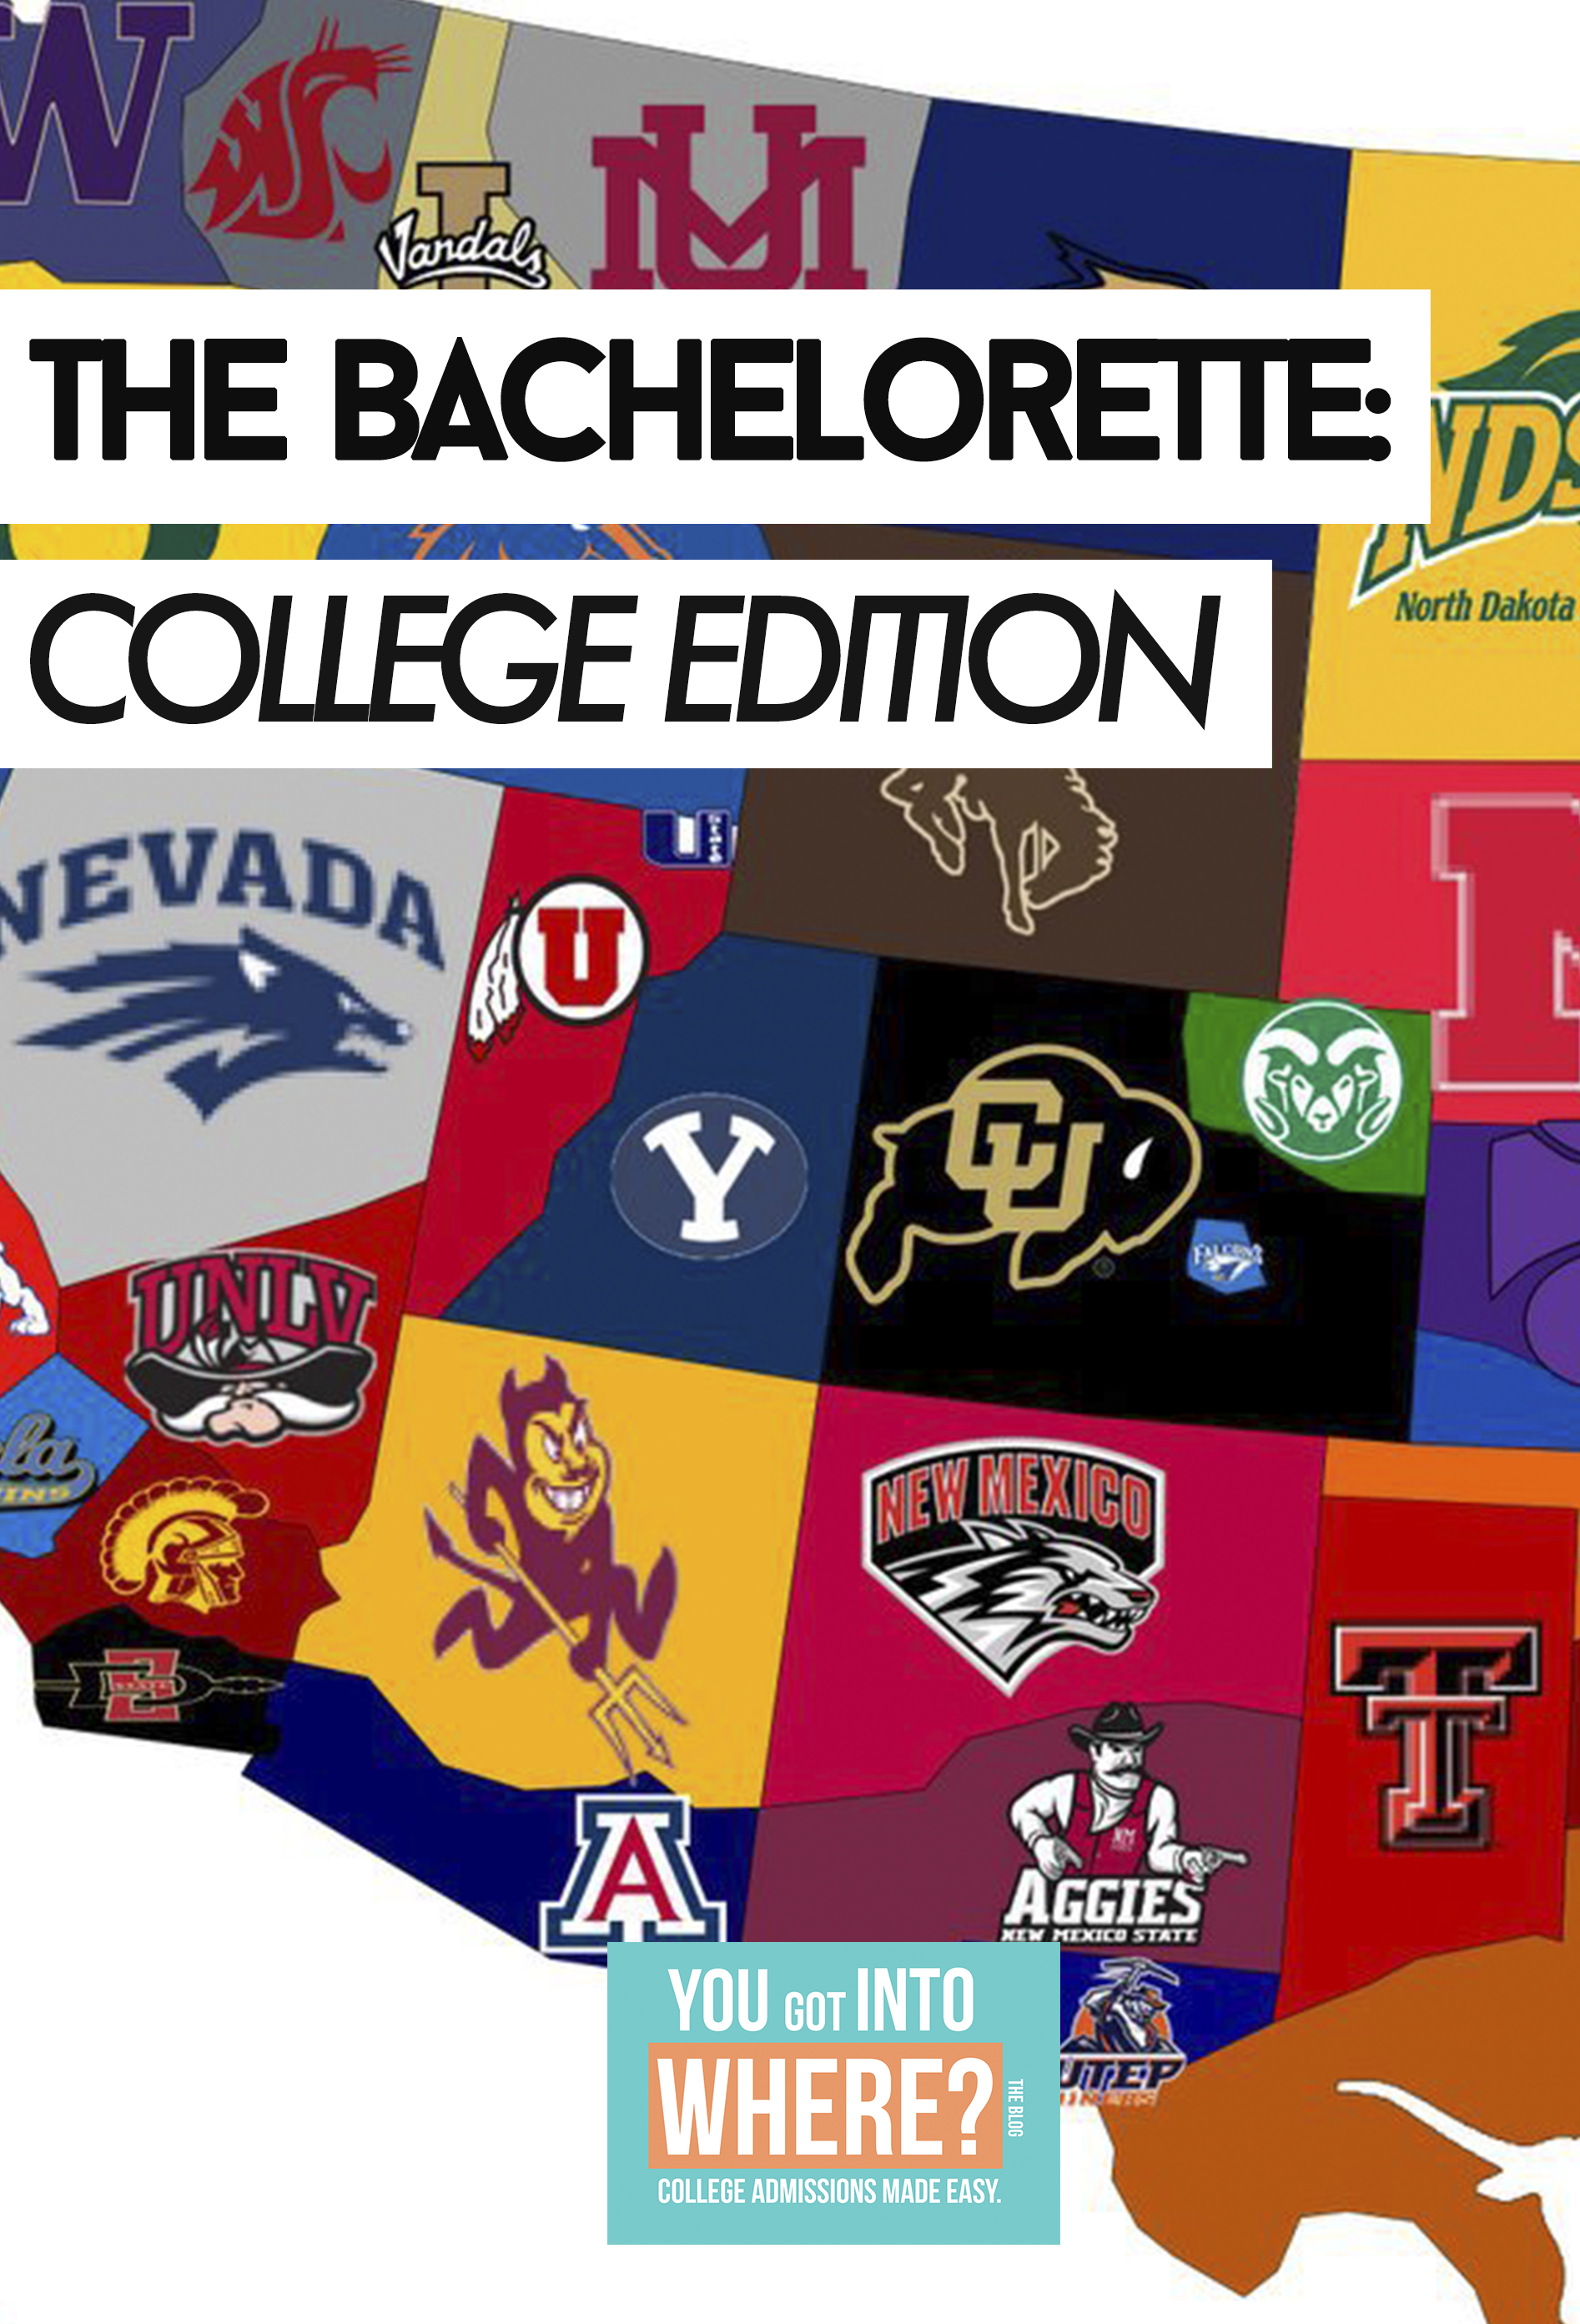 the-bachelorette-college-edition1.png